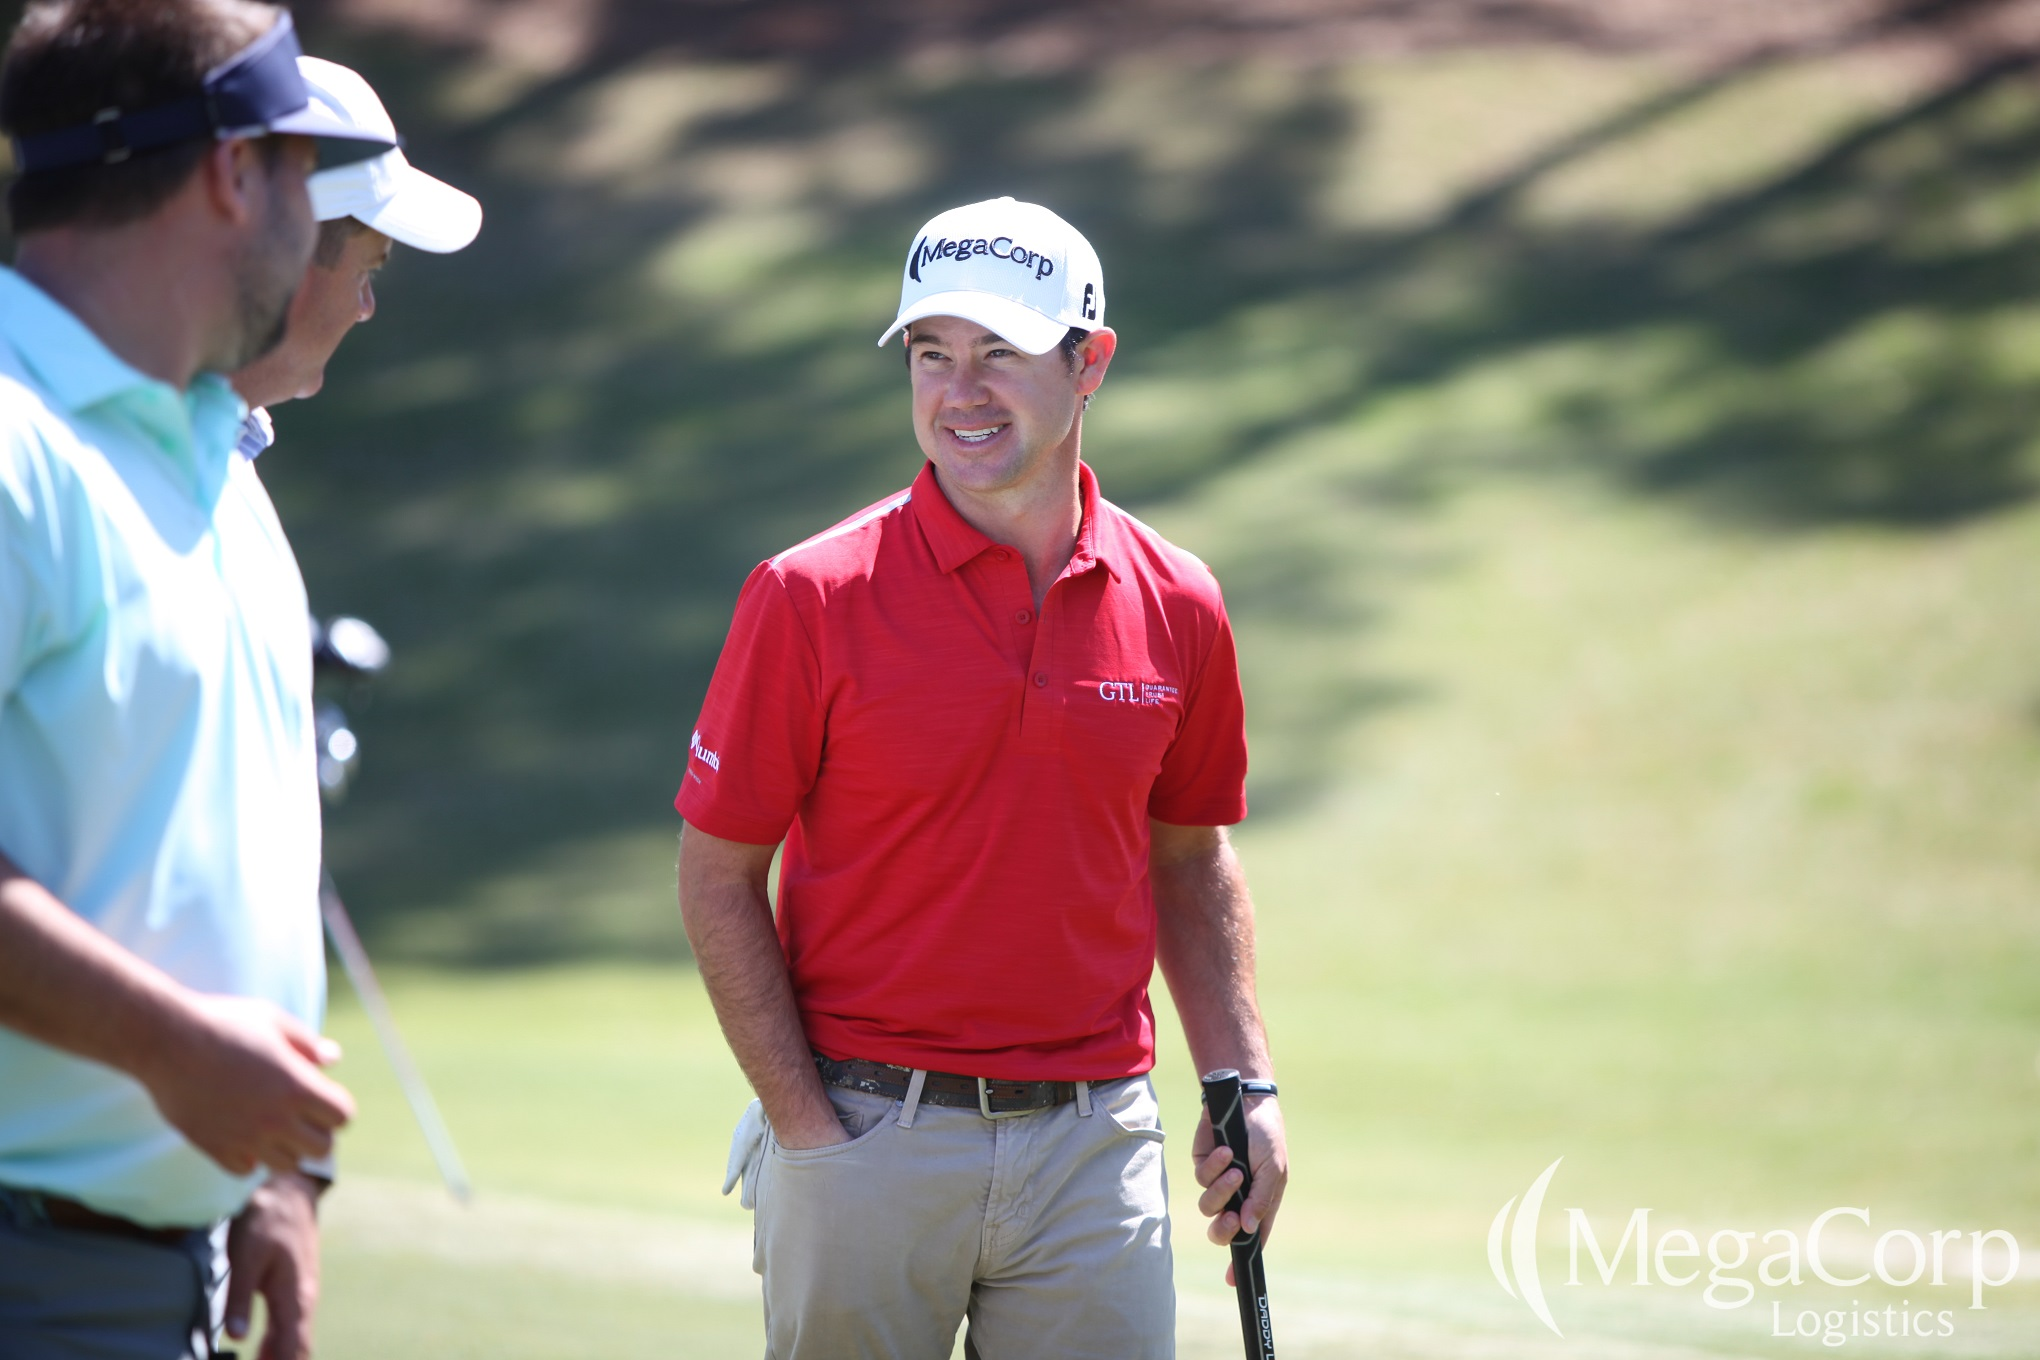 Brian Harman, smiling and wearing his MegaCorp hat, engages in conversation with two men on the golf course.